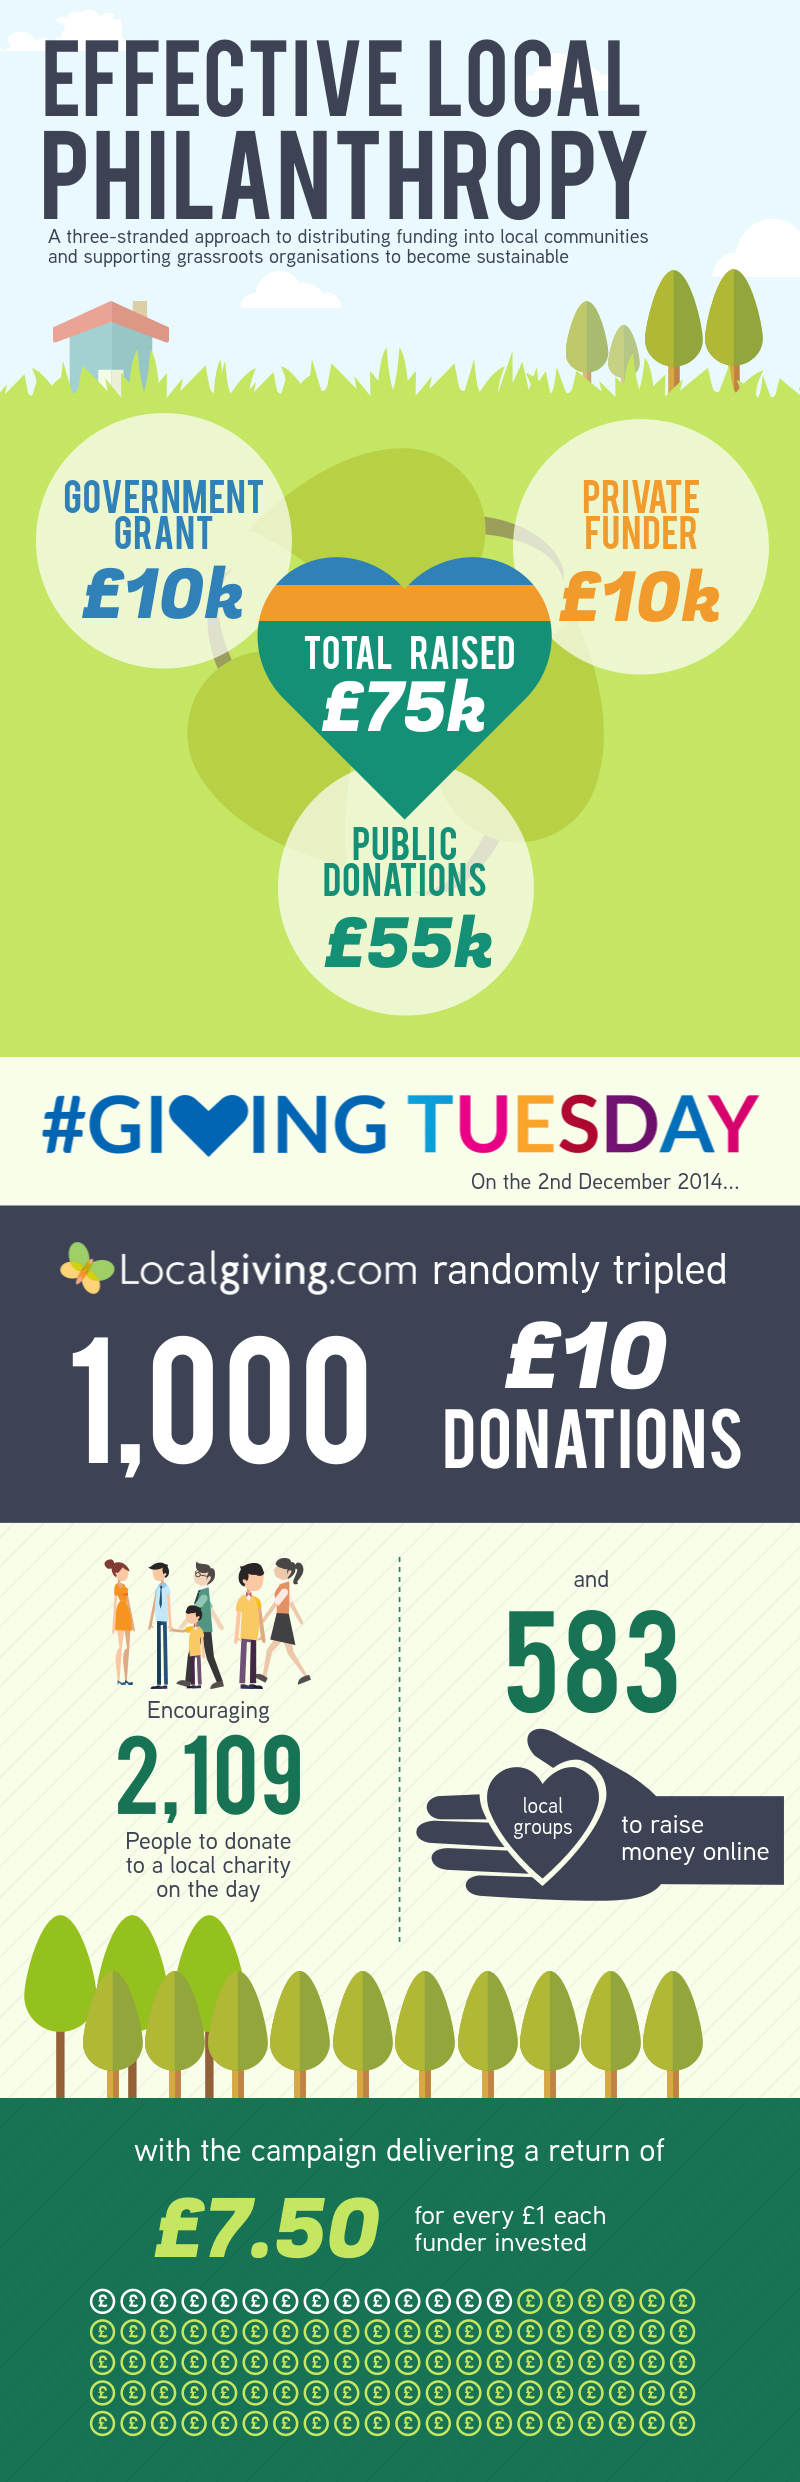 On Tuesday the 2nd of December 2014, Localgiving, the leading support network for local charities, took part in the UK's first ever #GivingTuesday. As founding partner, Localgiving launched its Triple Tenner Tuesday initiative, tripling 1,000 £10 online donations made to local charities through the platform on the day. In just 24 hours, the campaign raised over £75,000 for more than 550 community groups, allowing them to truly benefit from #GivingTuesday.